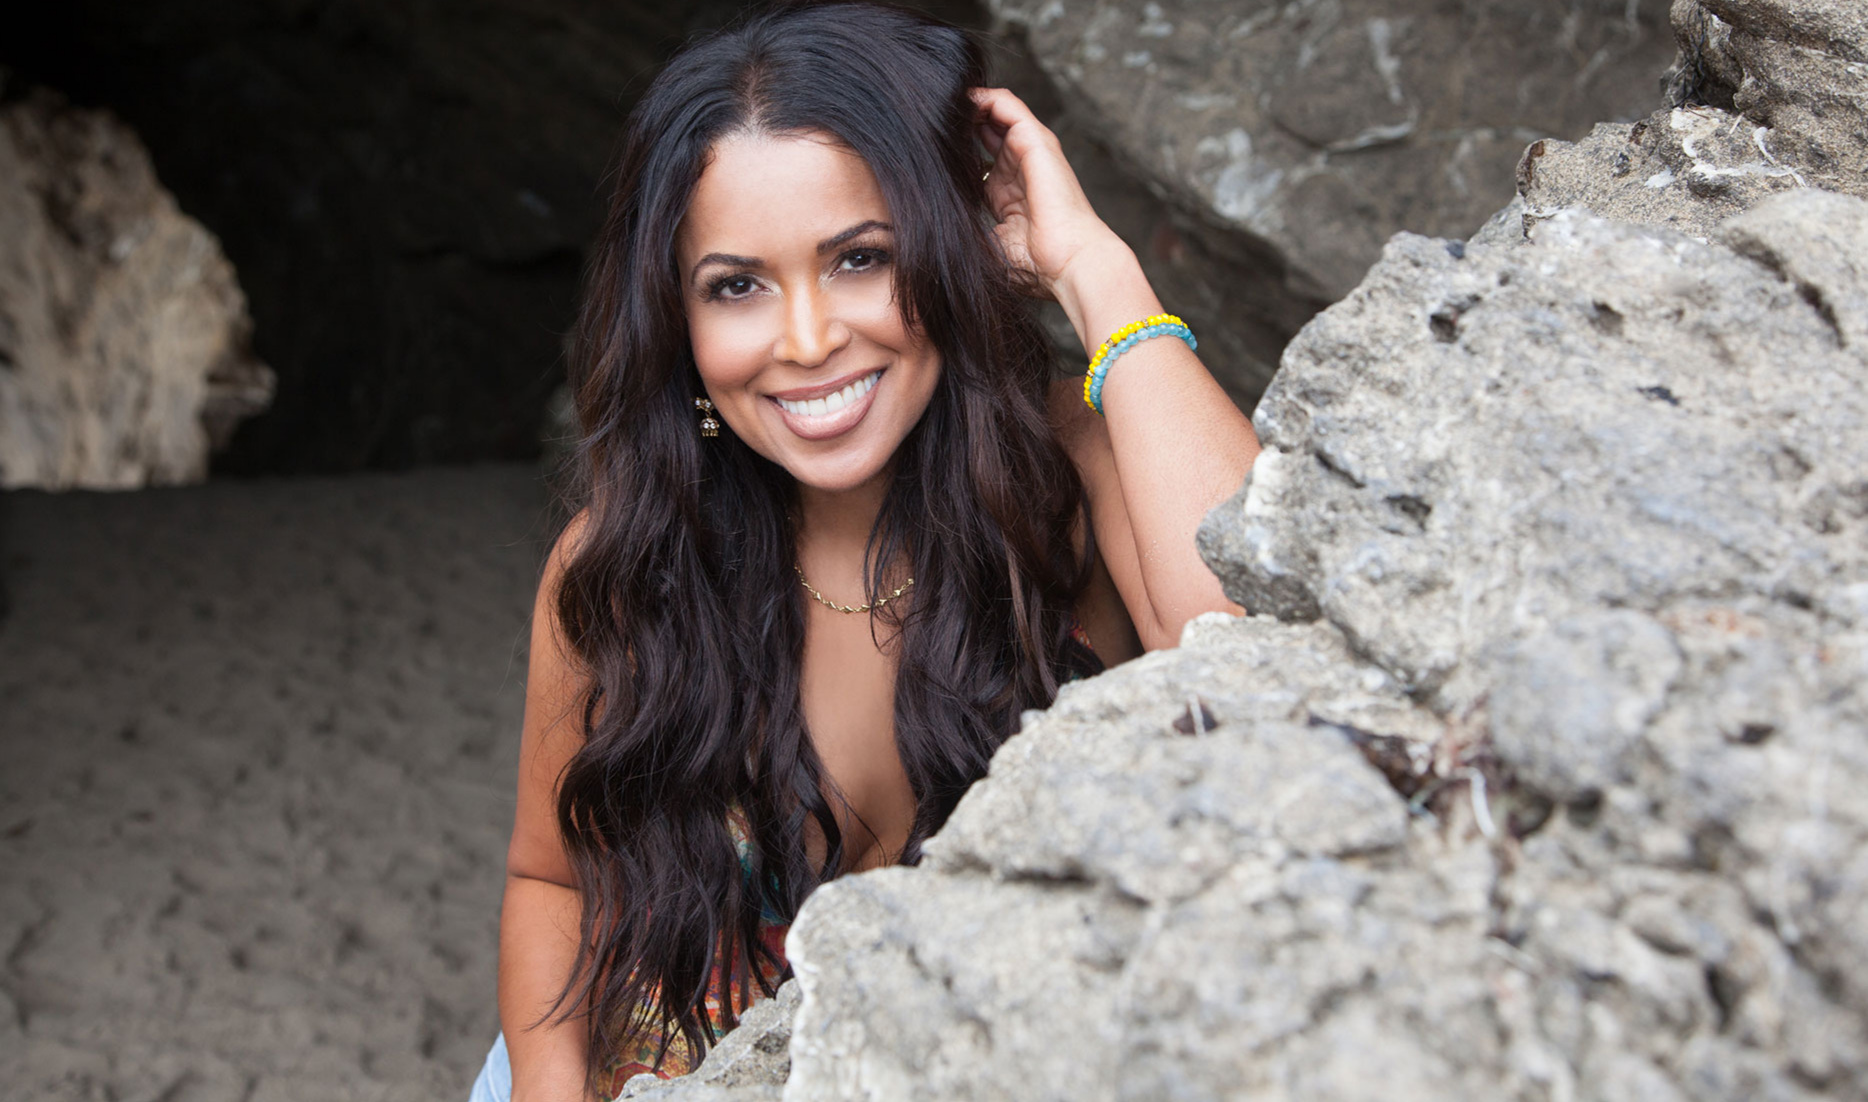 ALRIGHT NOW - TV & FILM PRODUCER TRACEY EDMONDS